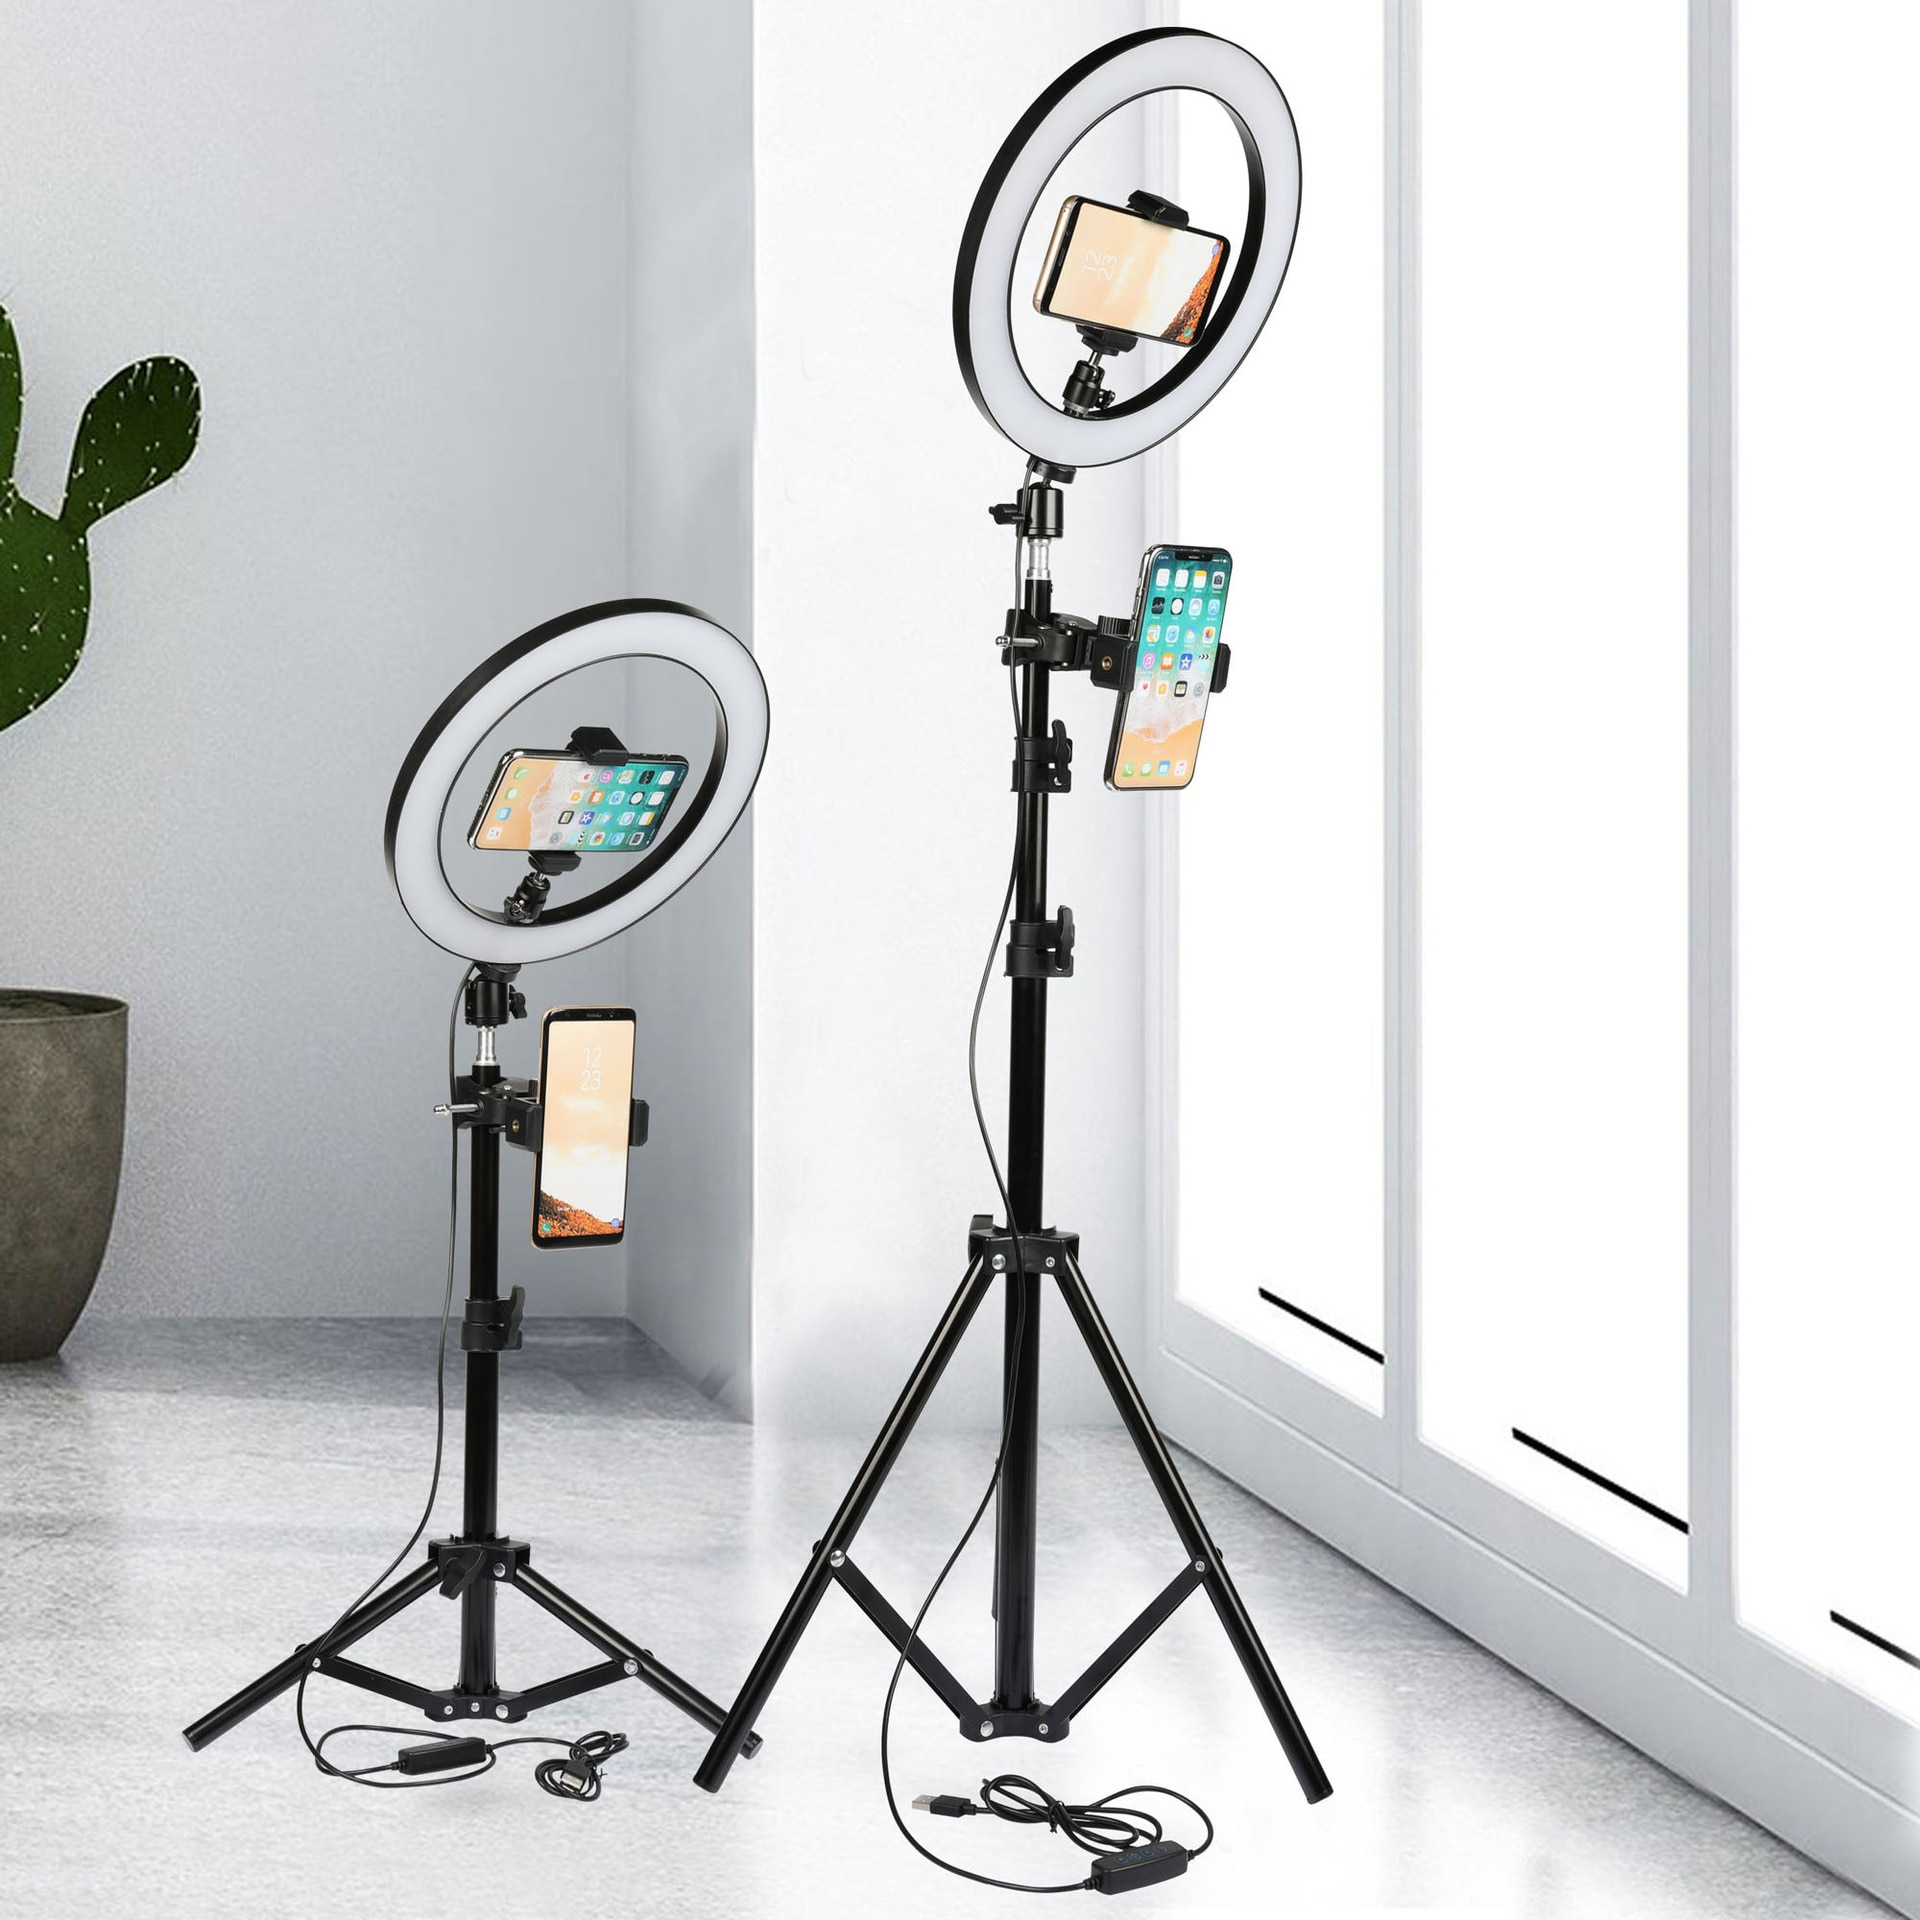 Anneau+lumineux+LED+multifonctions+de+26CM%2C+intensit%C3%A9+variable%2C+pour+Selfie%2C+support+de+t%C3%A9l%C3%A9phone+portable%2C+cam%C3%A9ra%2C+diffusion+vid%C3%A9o+en+direct%2C+Youtube%2C+maquillage